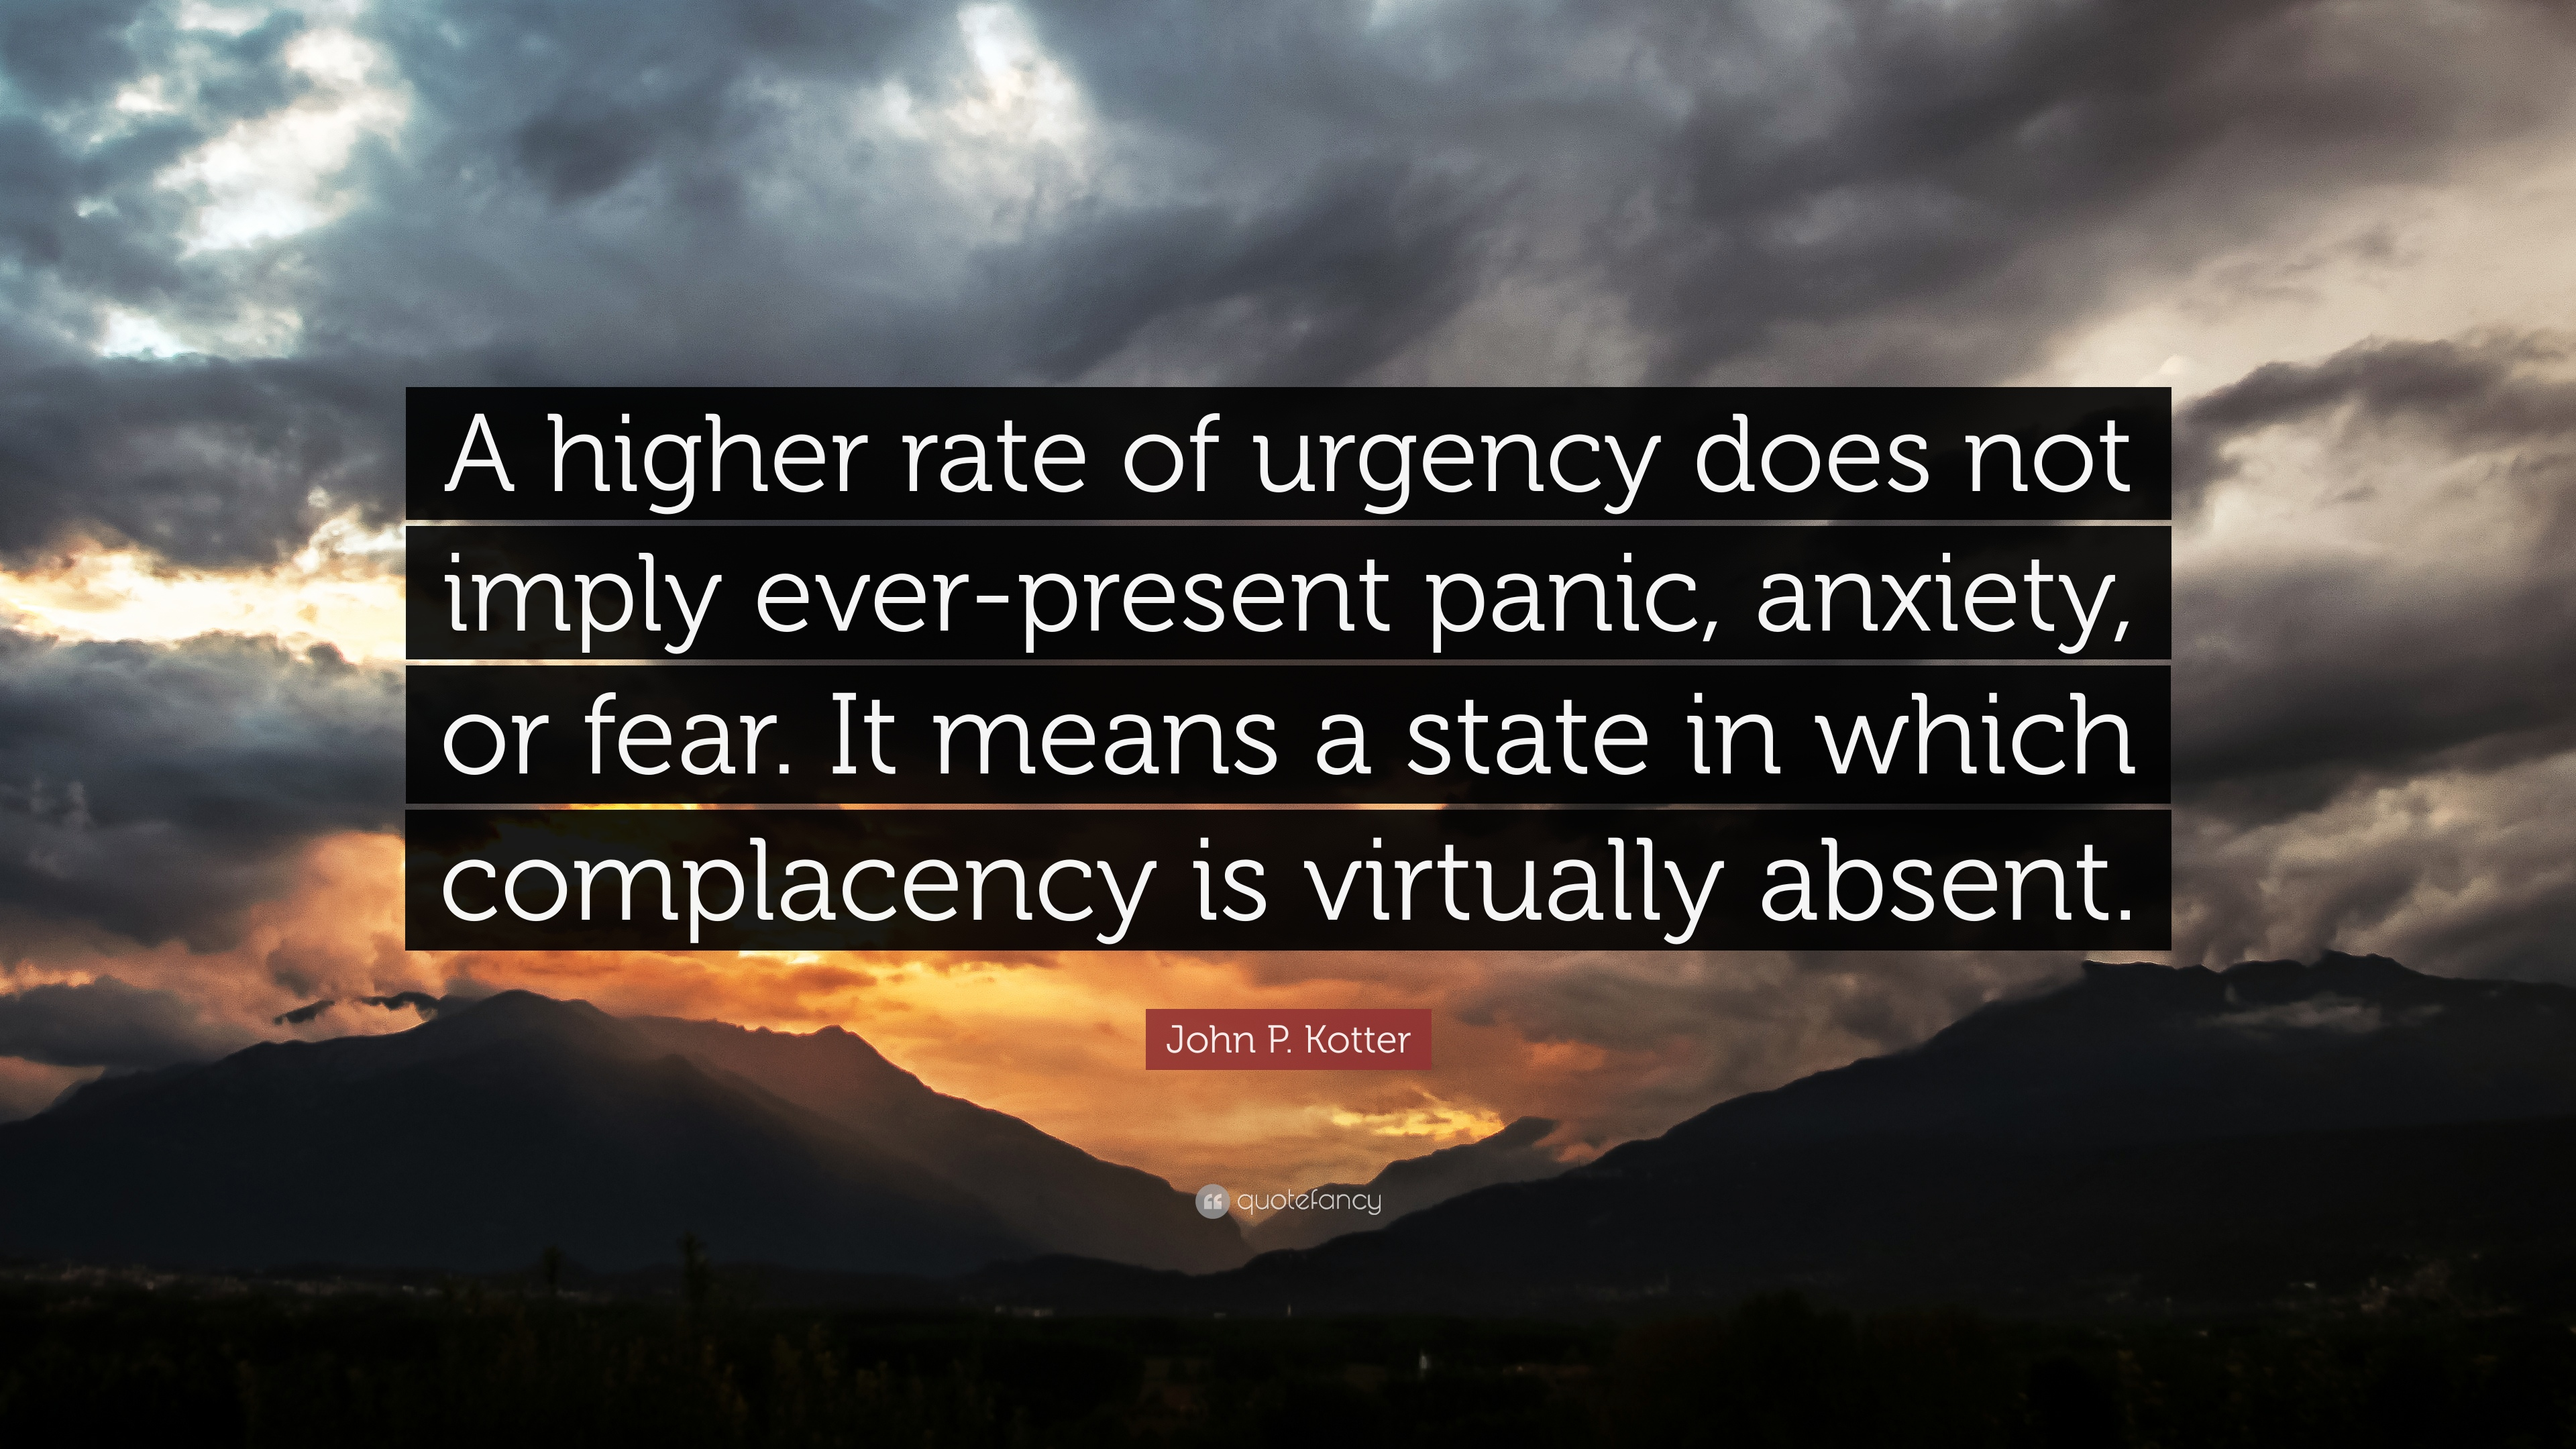 Complacency Quotes Complacency Quotes Amazing 10 Quotes On Complacency The Power